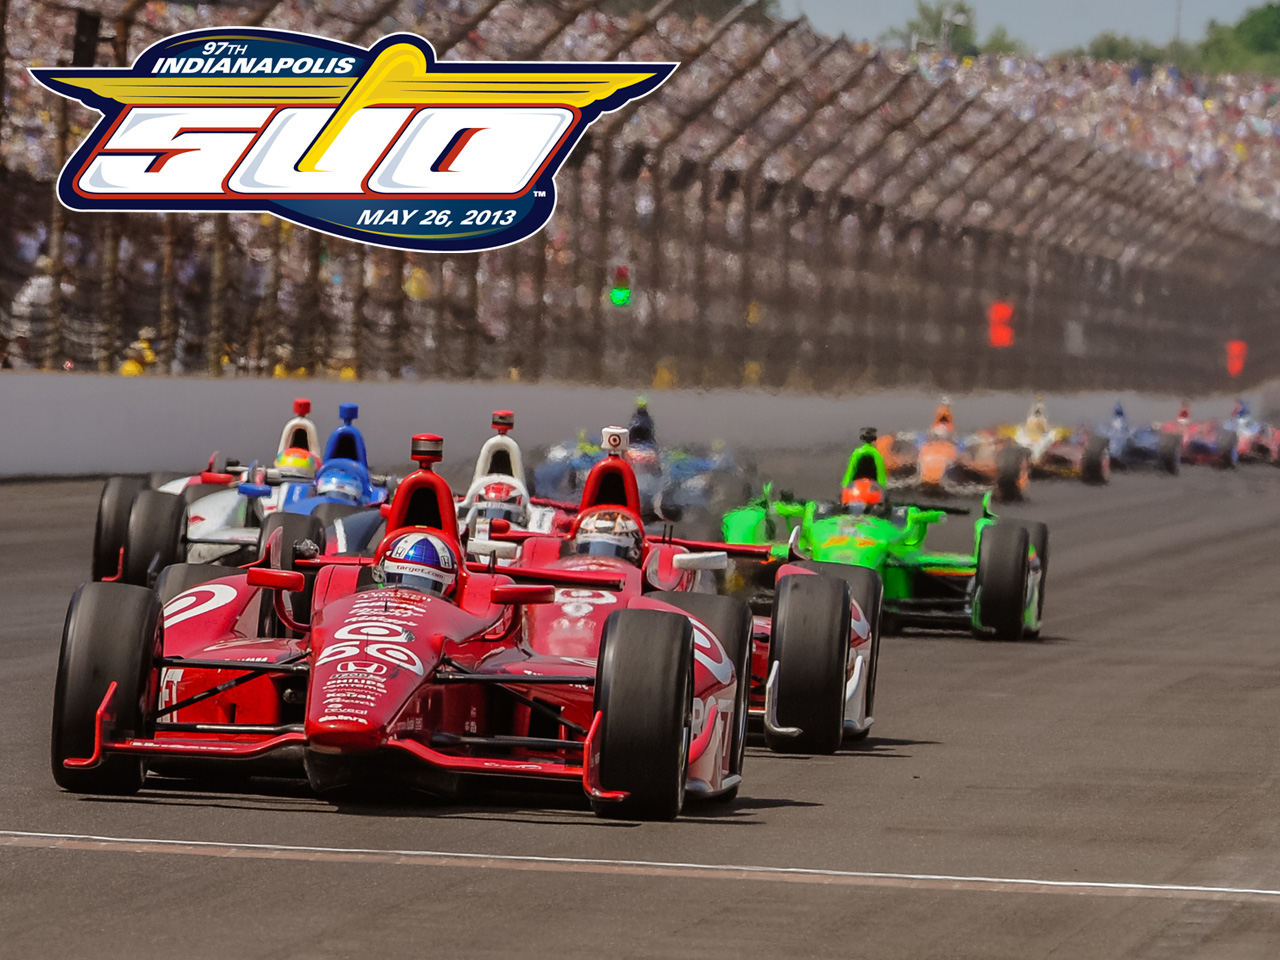 Indy 500 Wallpapers Image Wallpapers 1280x960